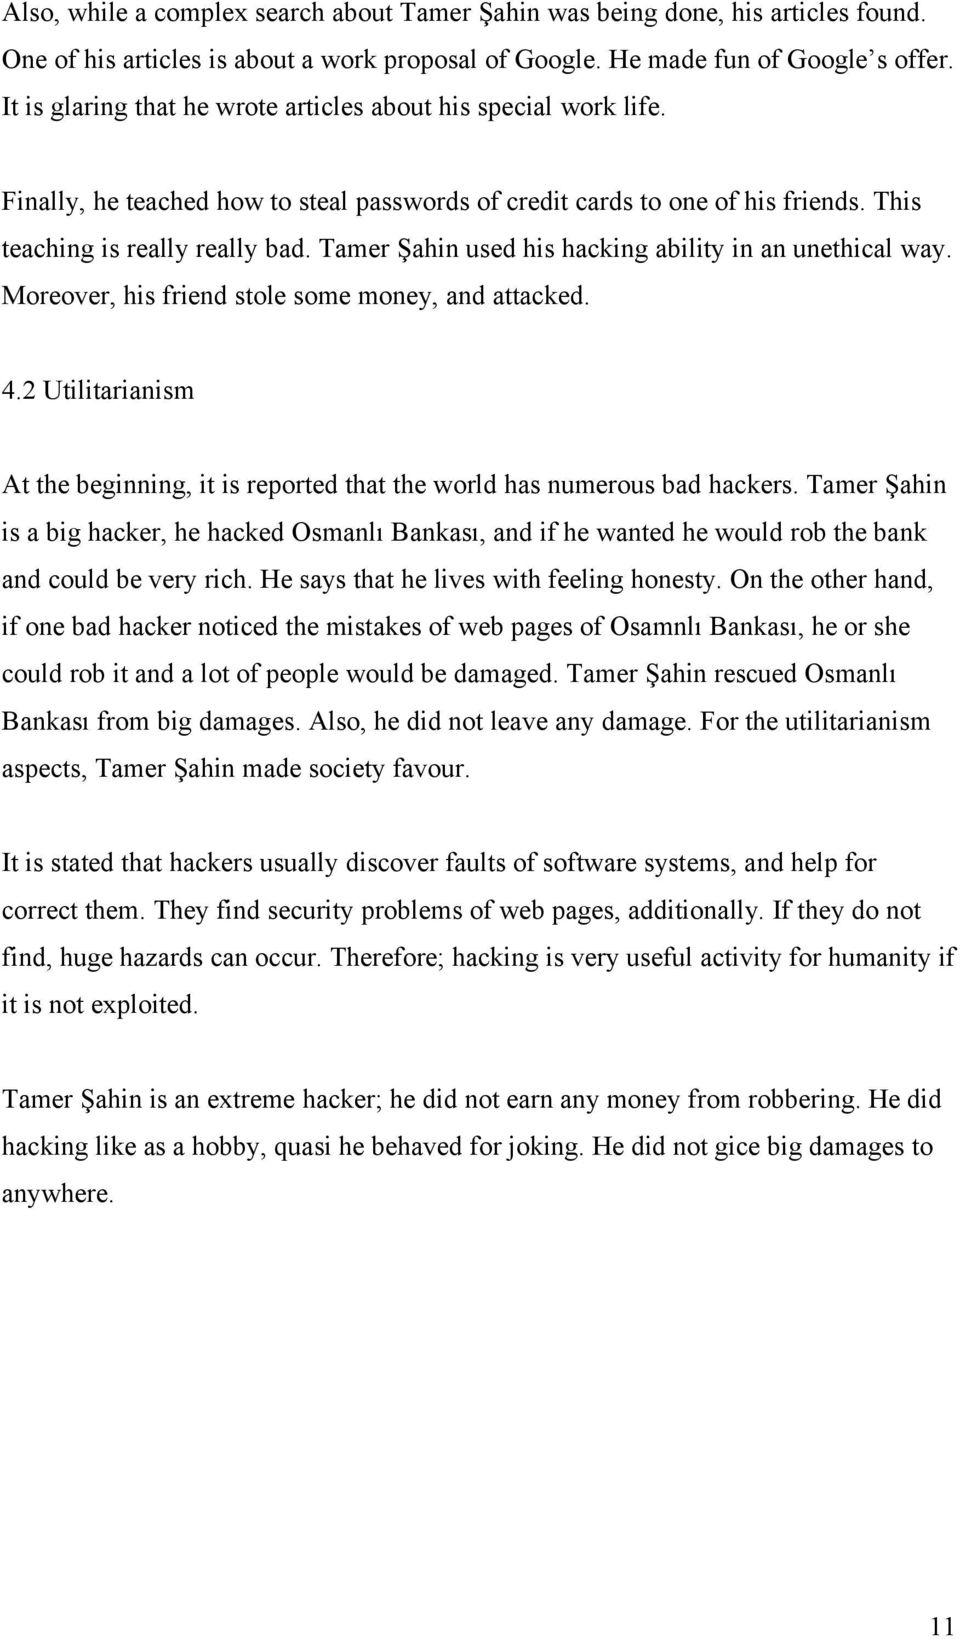 Tamer Şahin used his hacking ability in an unethical way. Moreover, his friend stole some money, and attacked. 4.